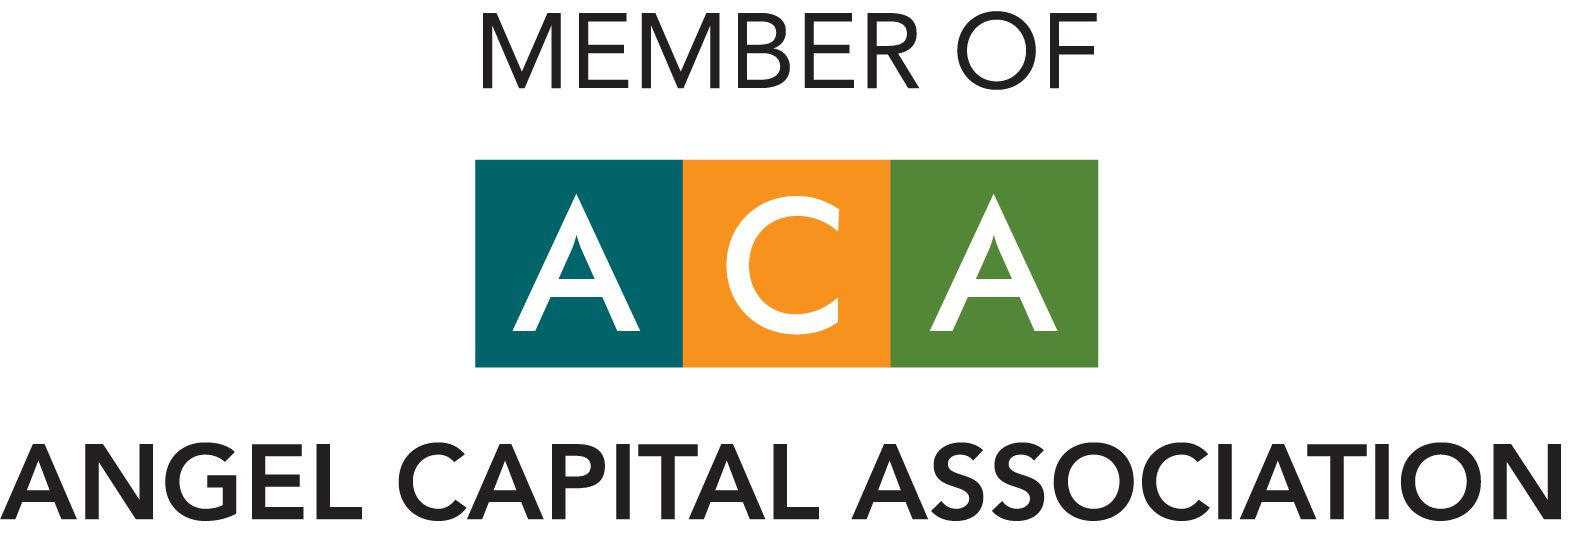 Plains Angels Member ACA Logo